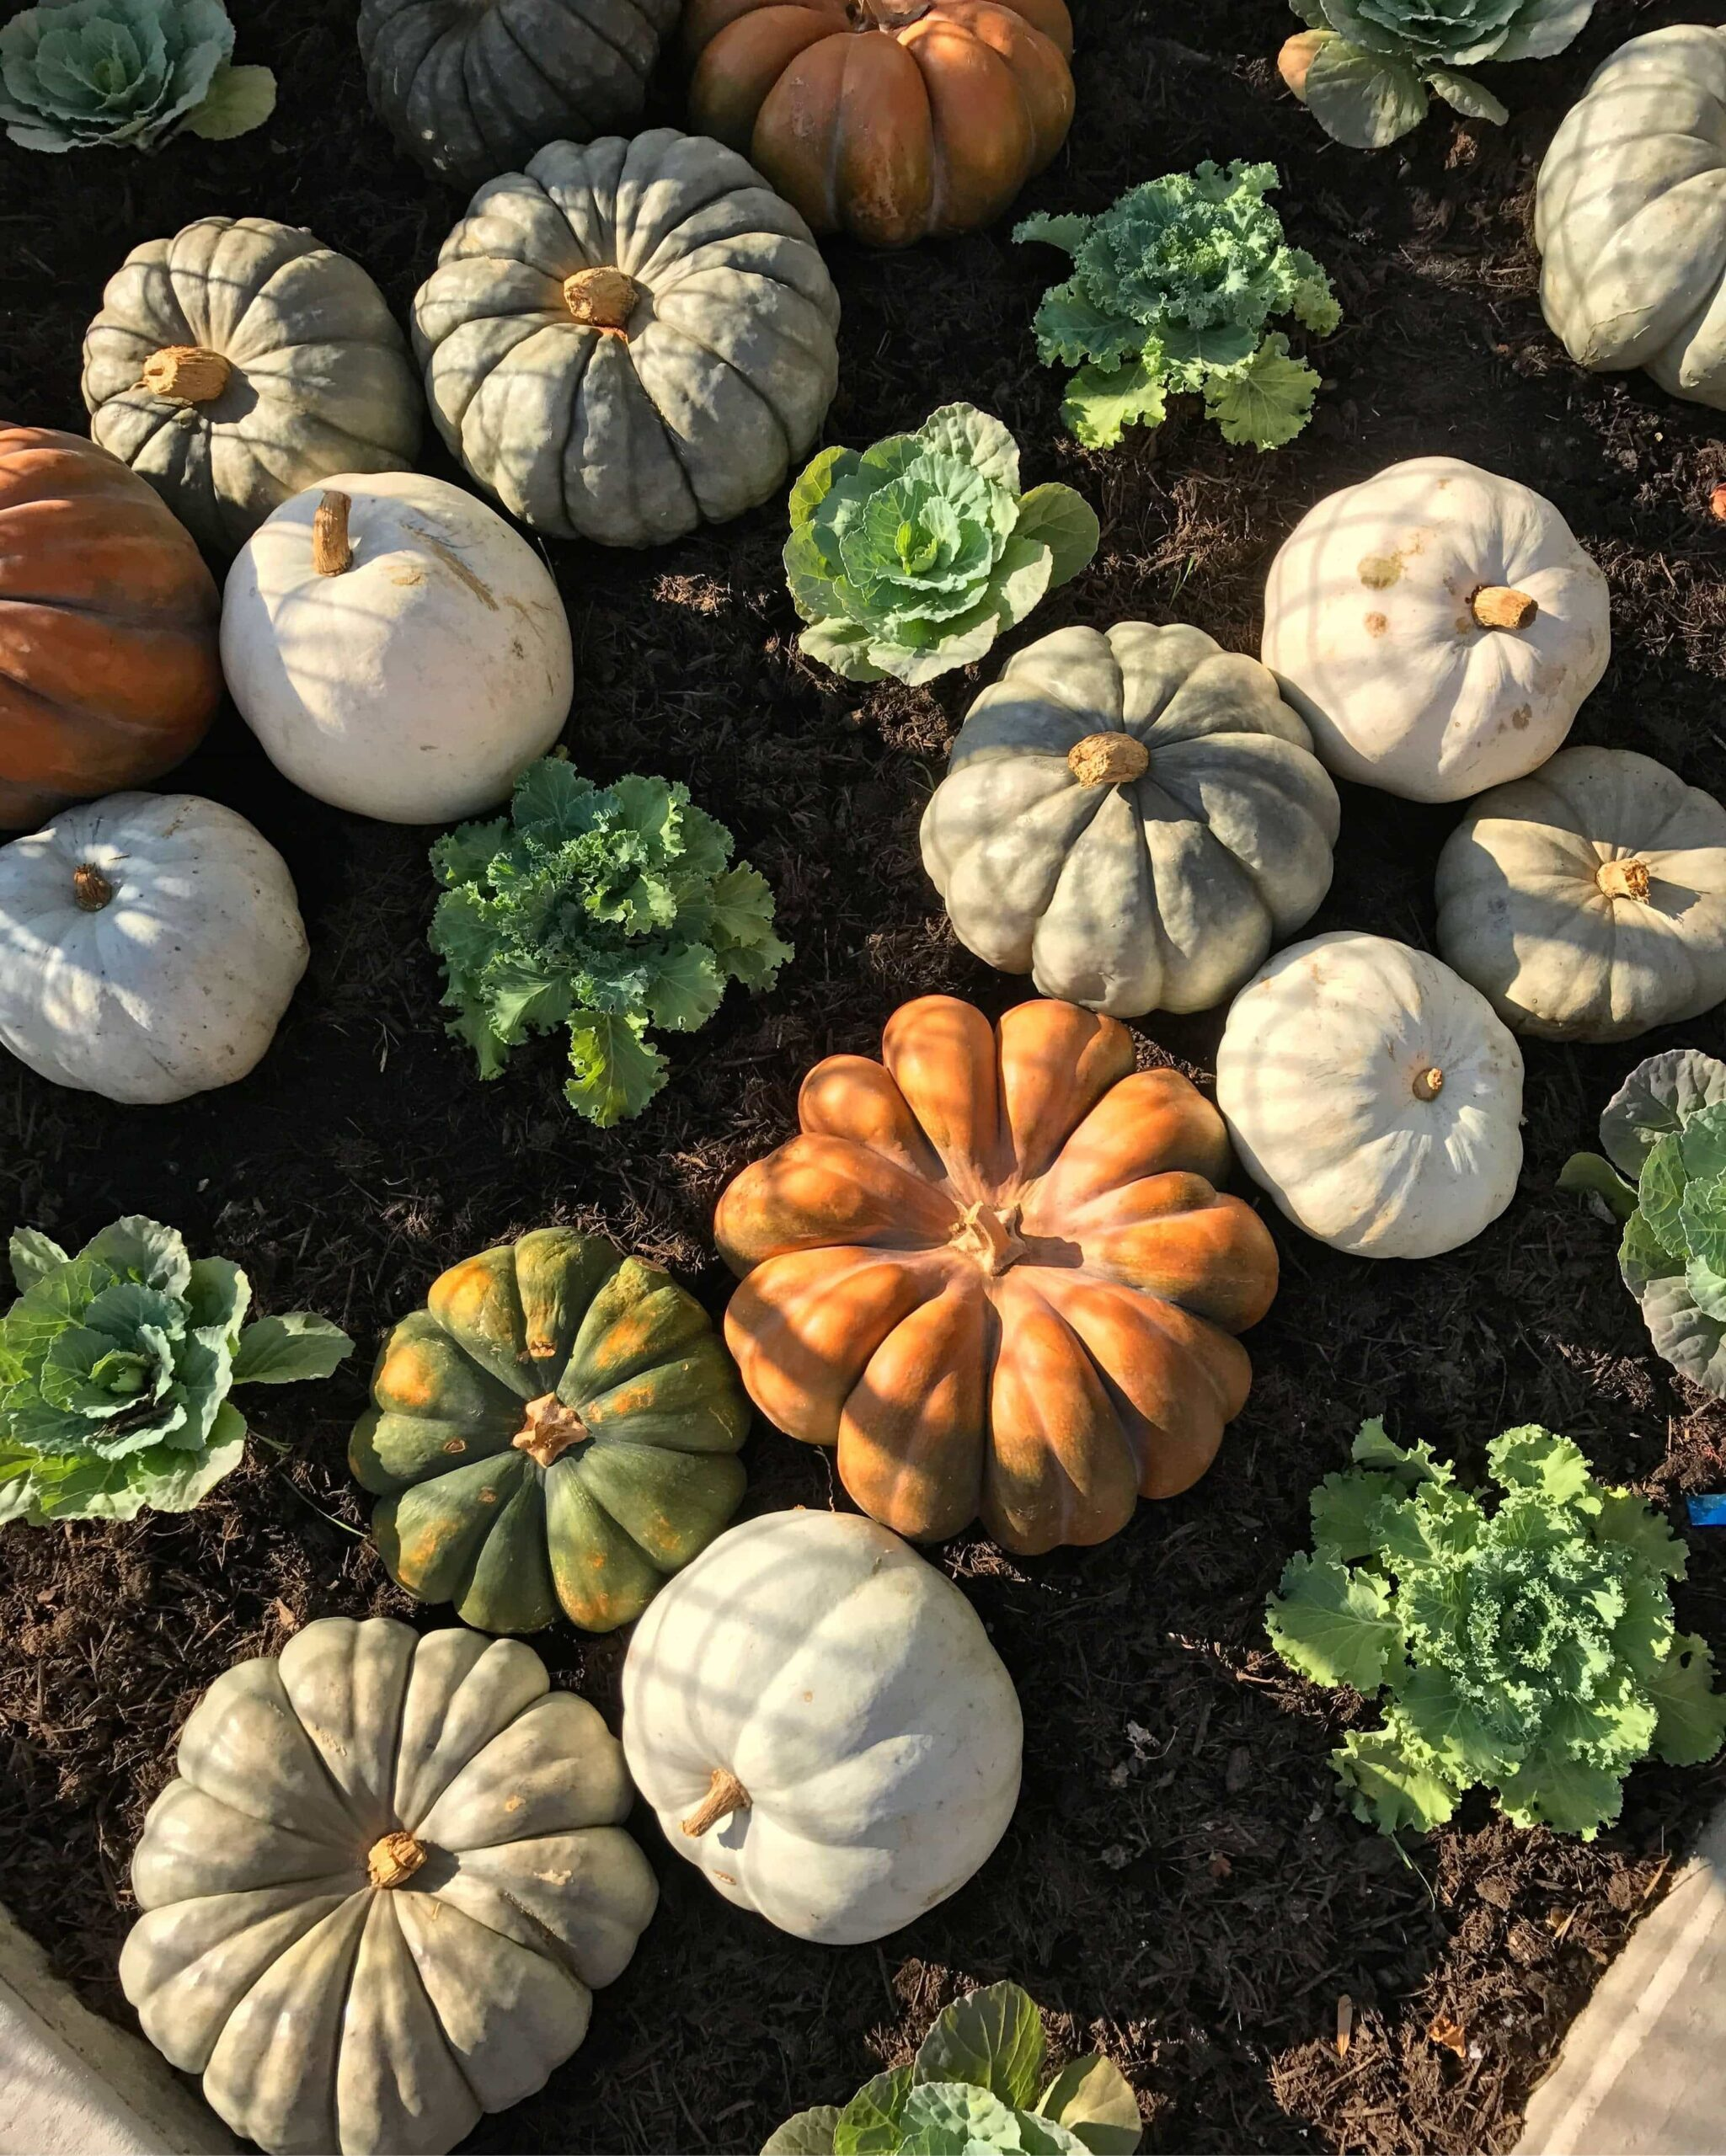 Orange, Green and White Pumpkins in a Garden Bed at Magnolia